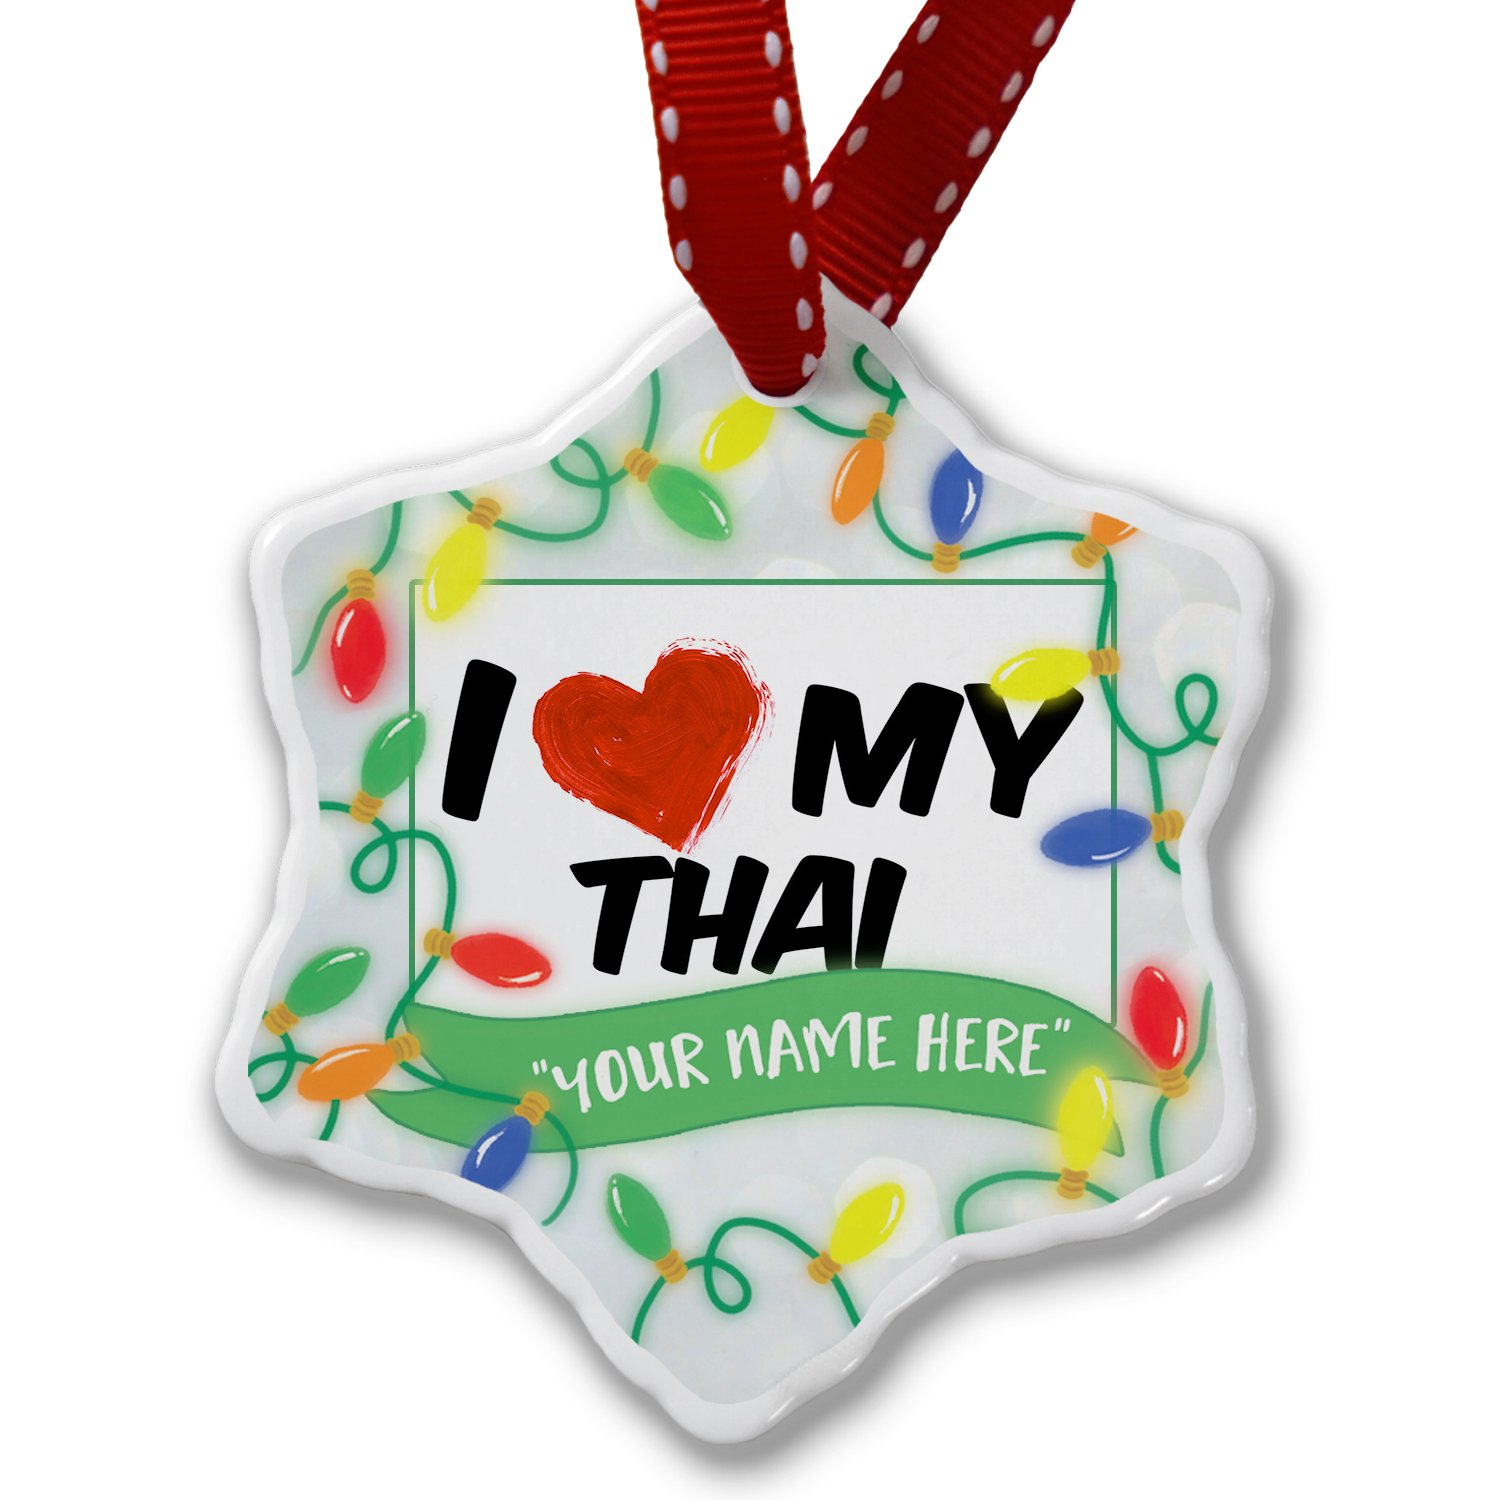 Personalized Name Christmas Ornament, I Love my Thai Cat from Thailand NEONBLOND